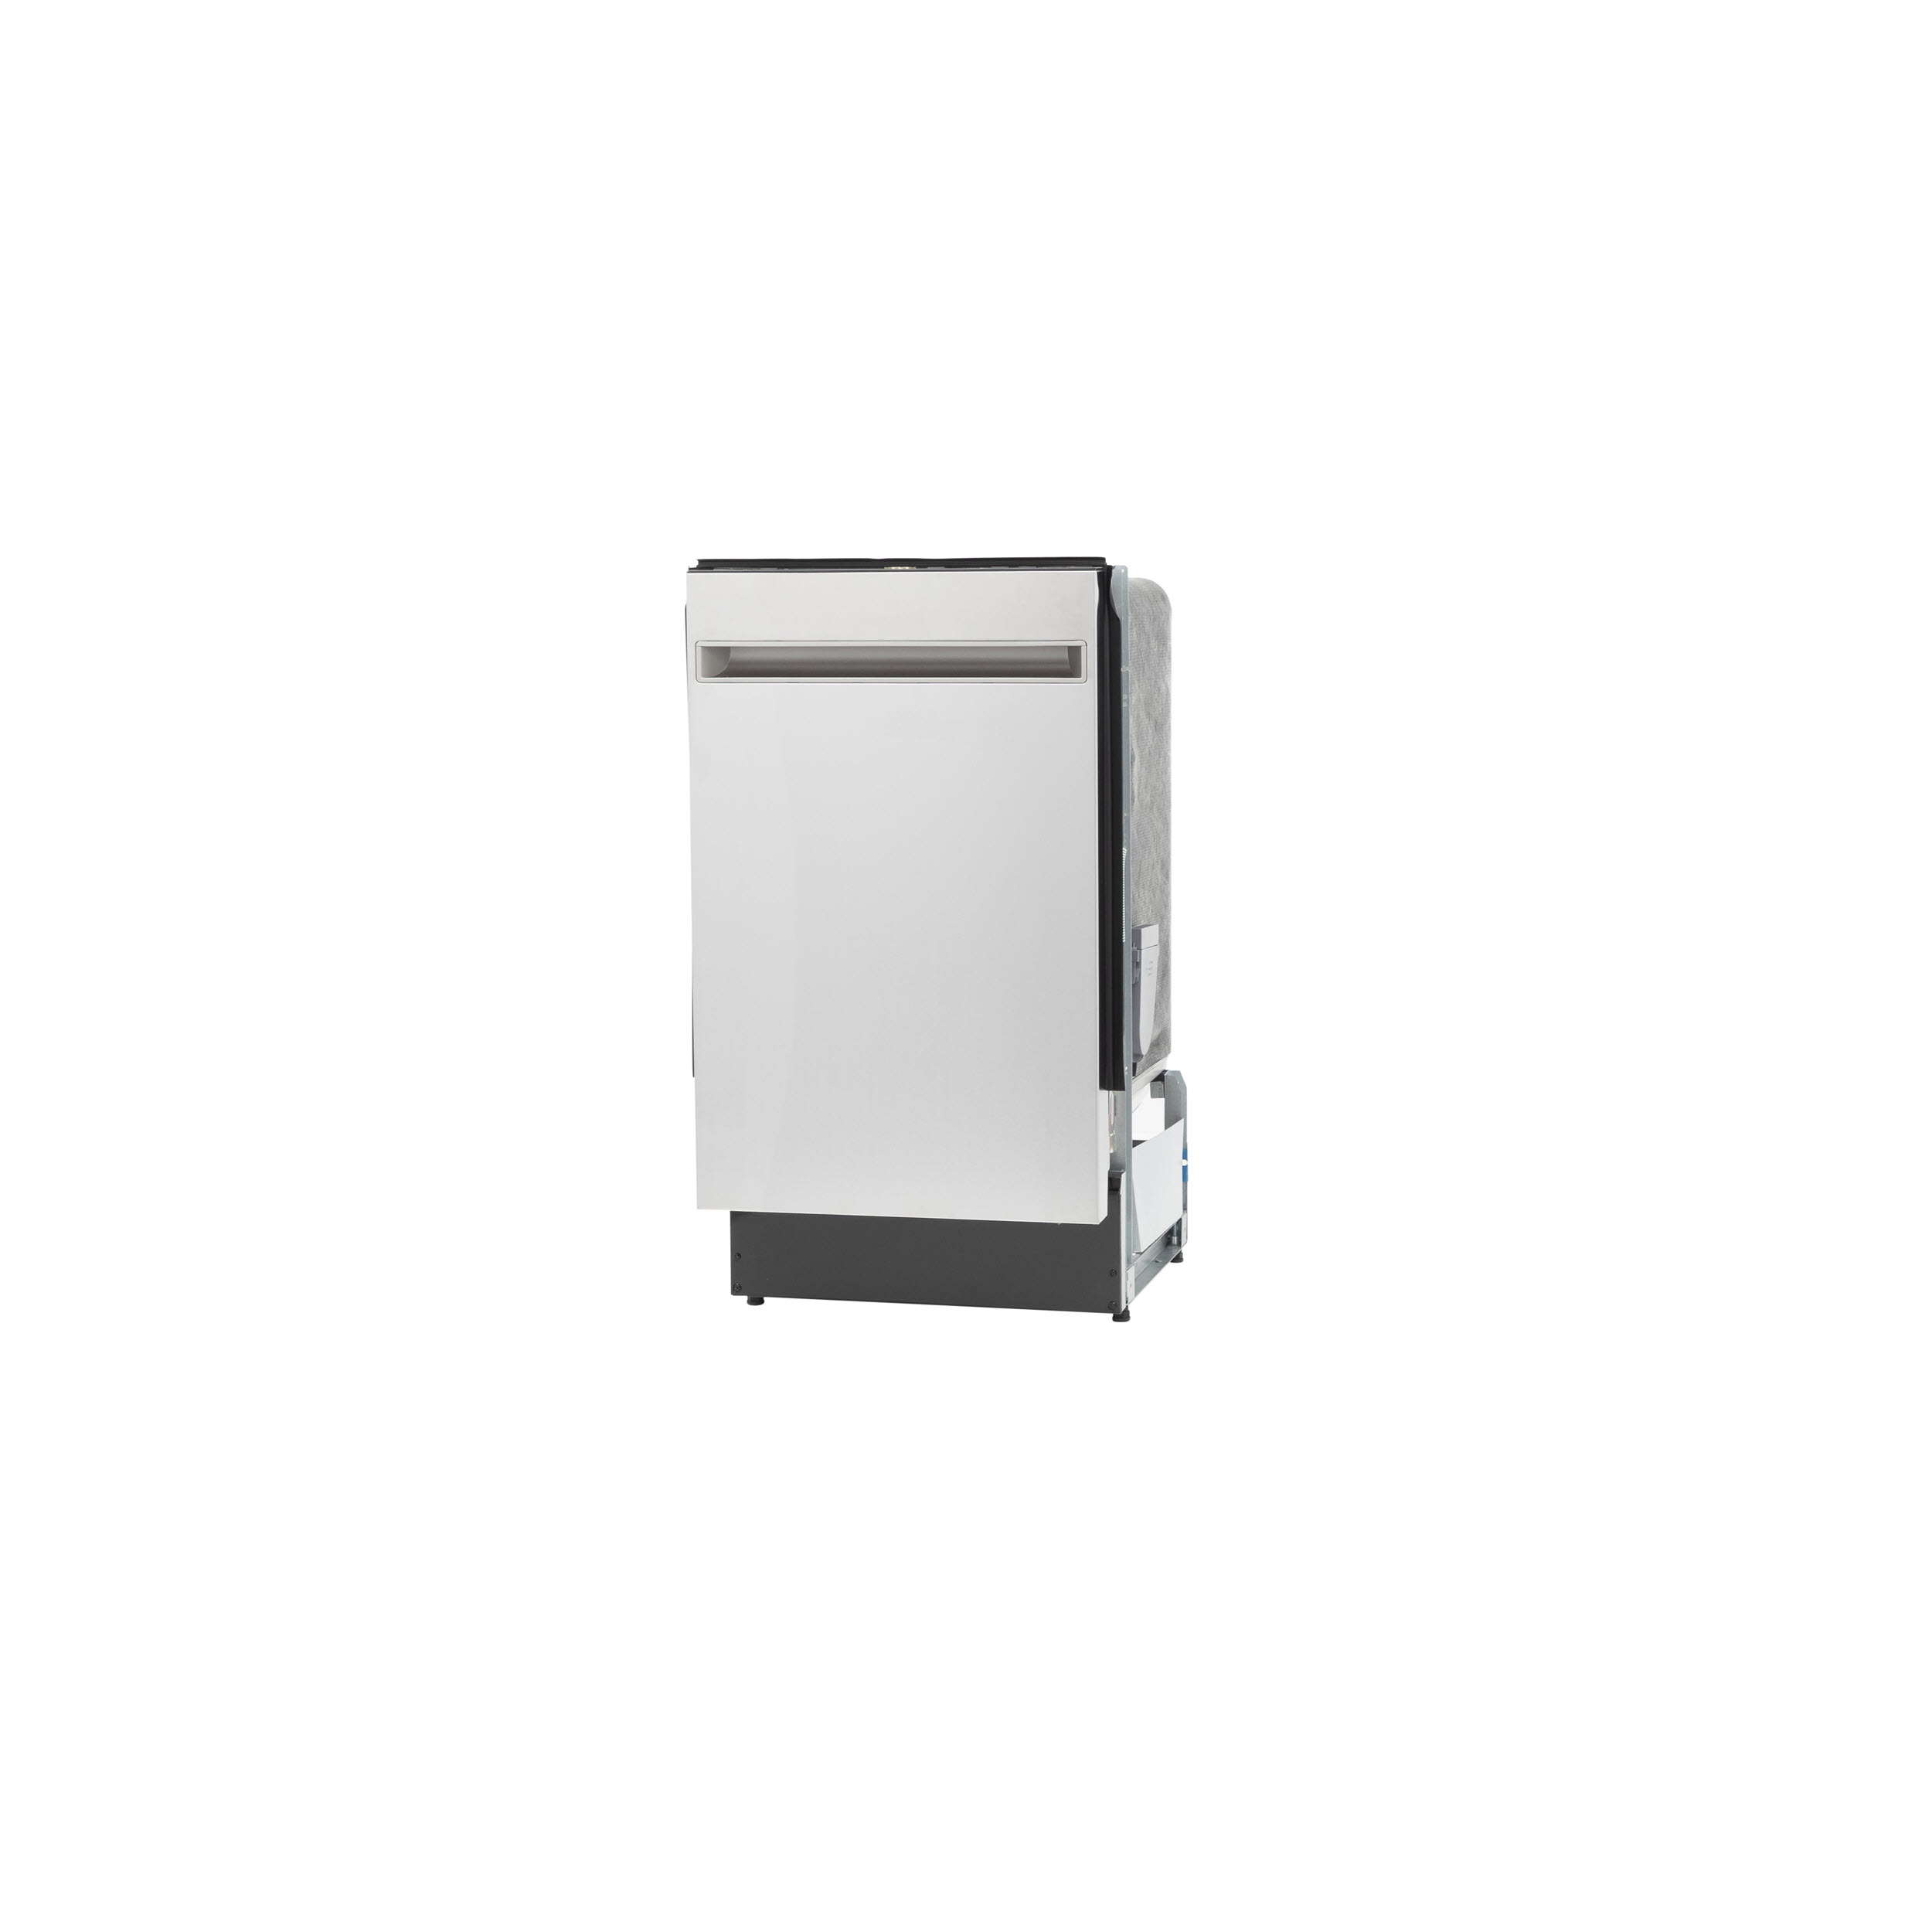 """Model: PDT145SSLSS   GE Profile GE Profile™ 18"""" ADA Compliant Stainless Steel Interior Dishwasher with Sanitize Cycle"""